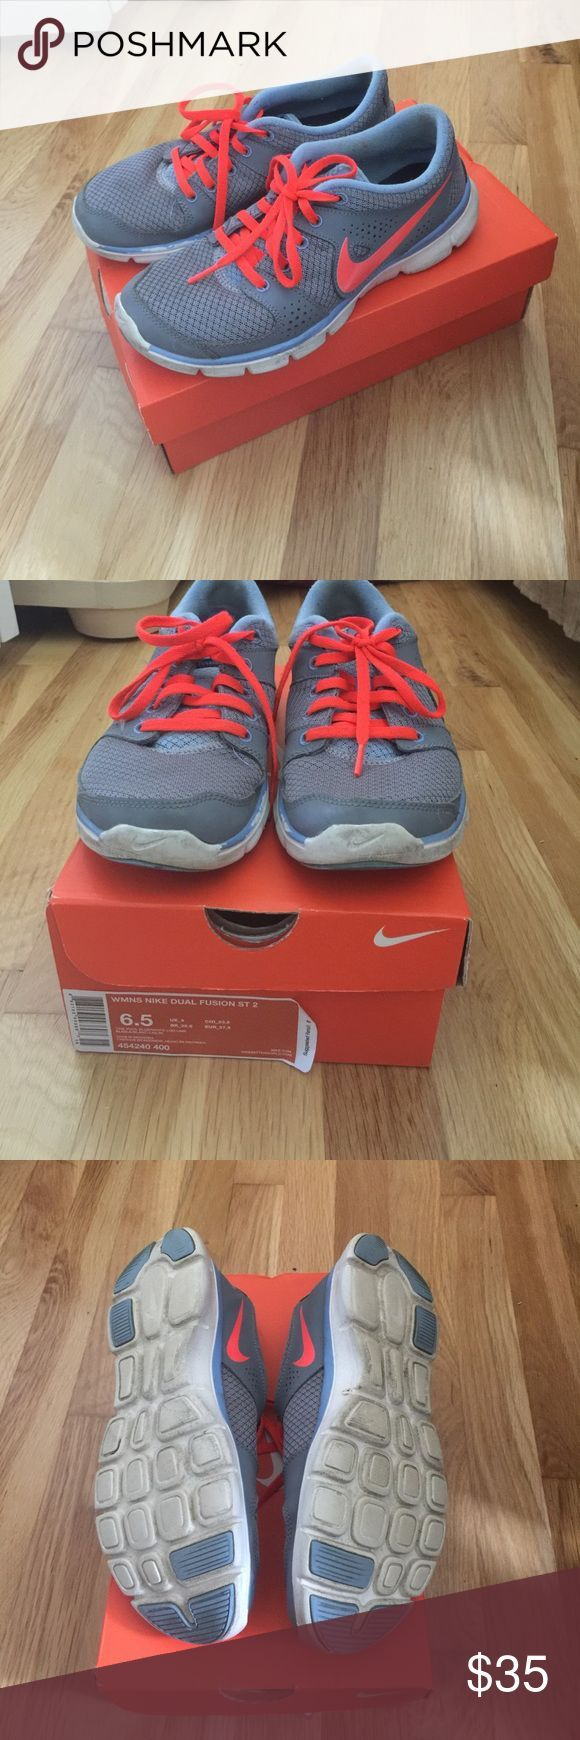 Nike Dual Fusion St 2 Can send box if needed Nike Shoes Athletic Shoes